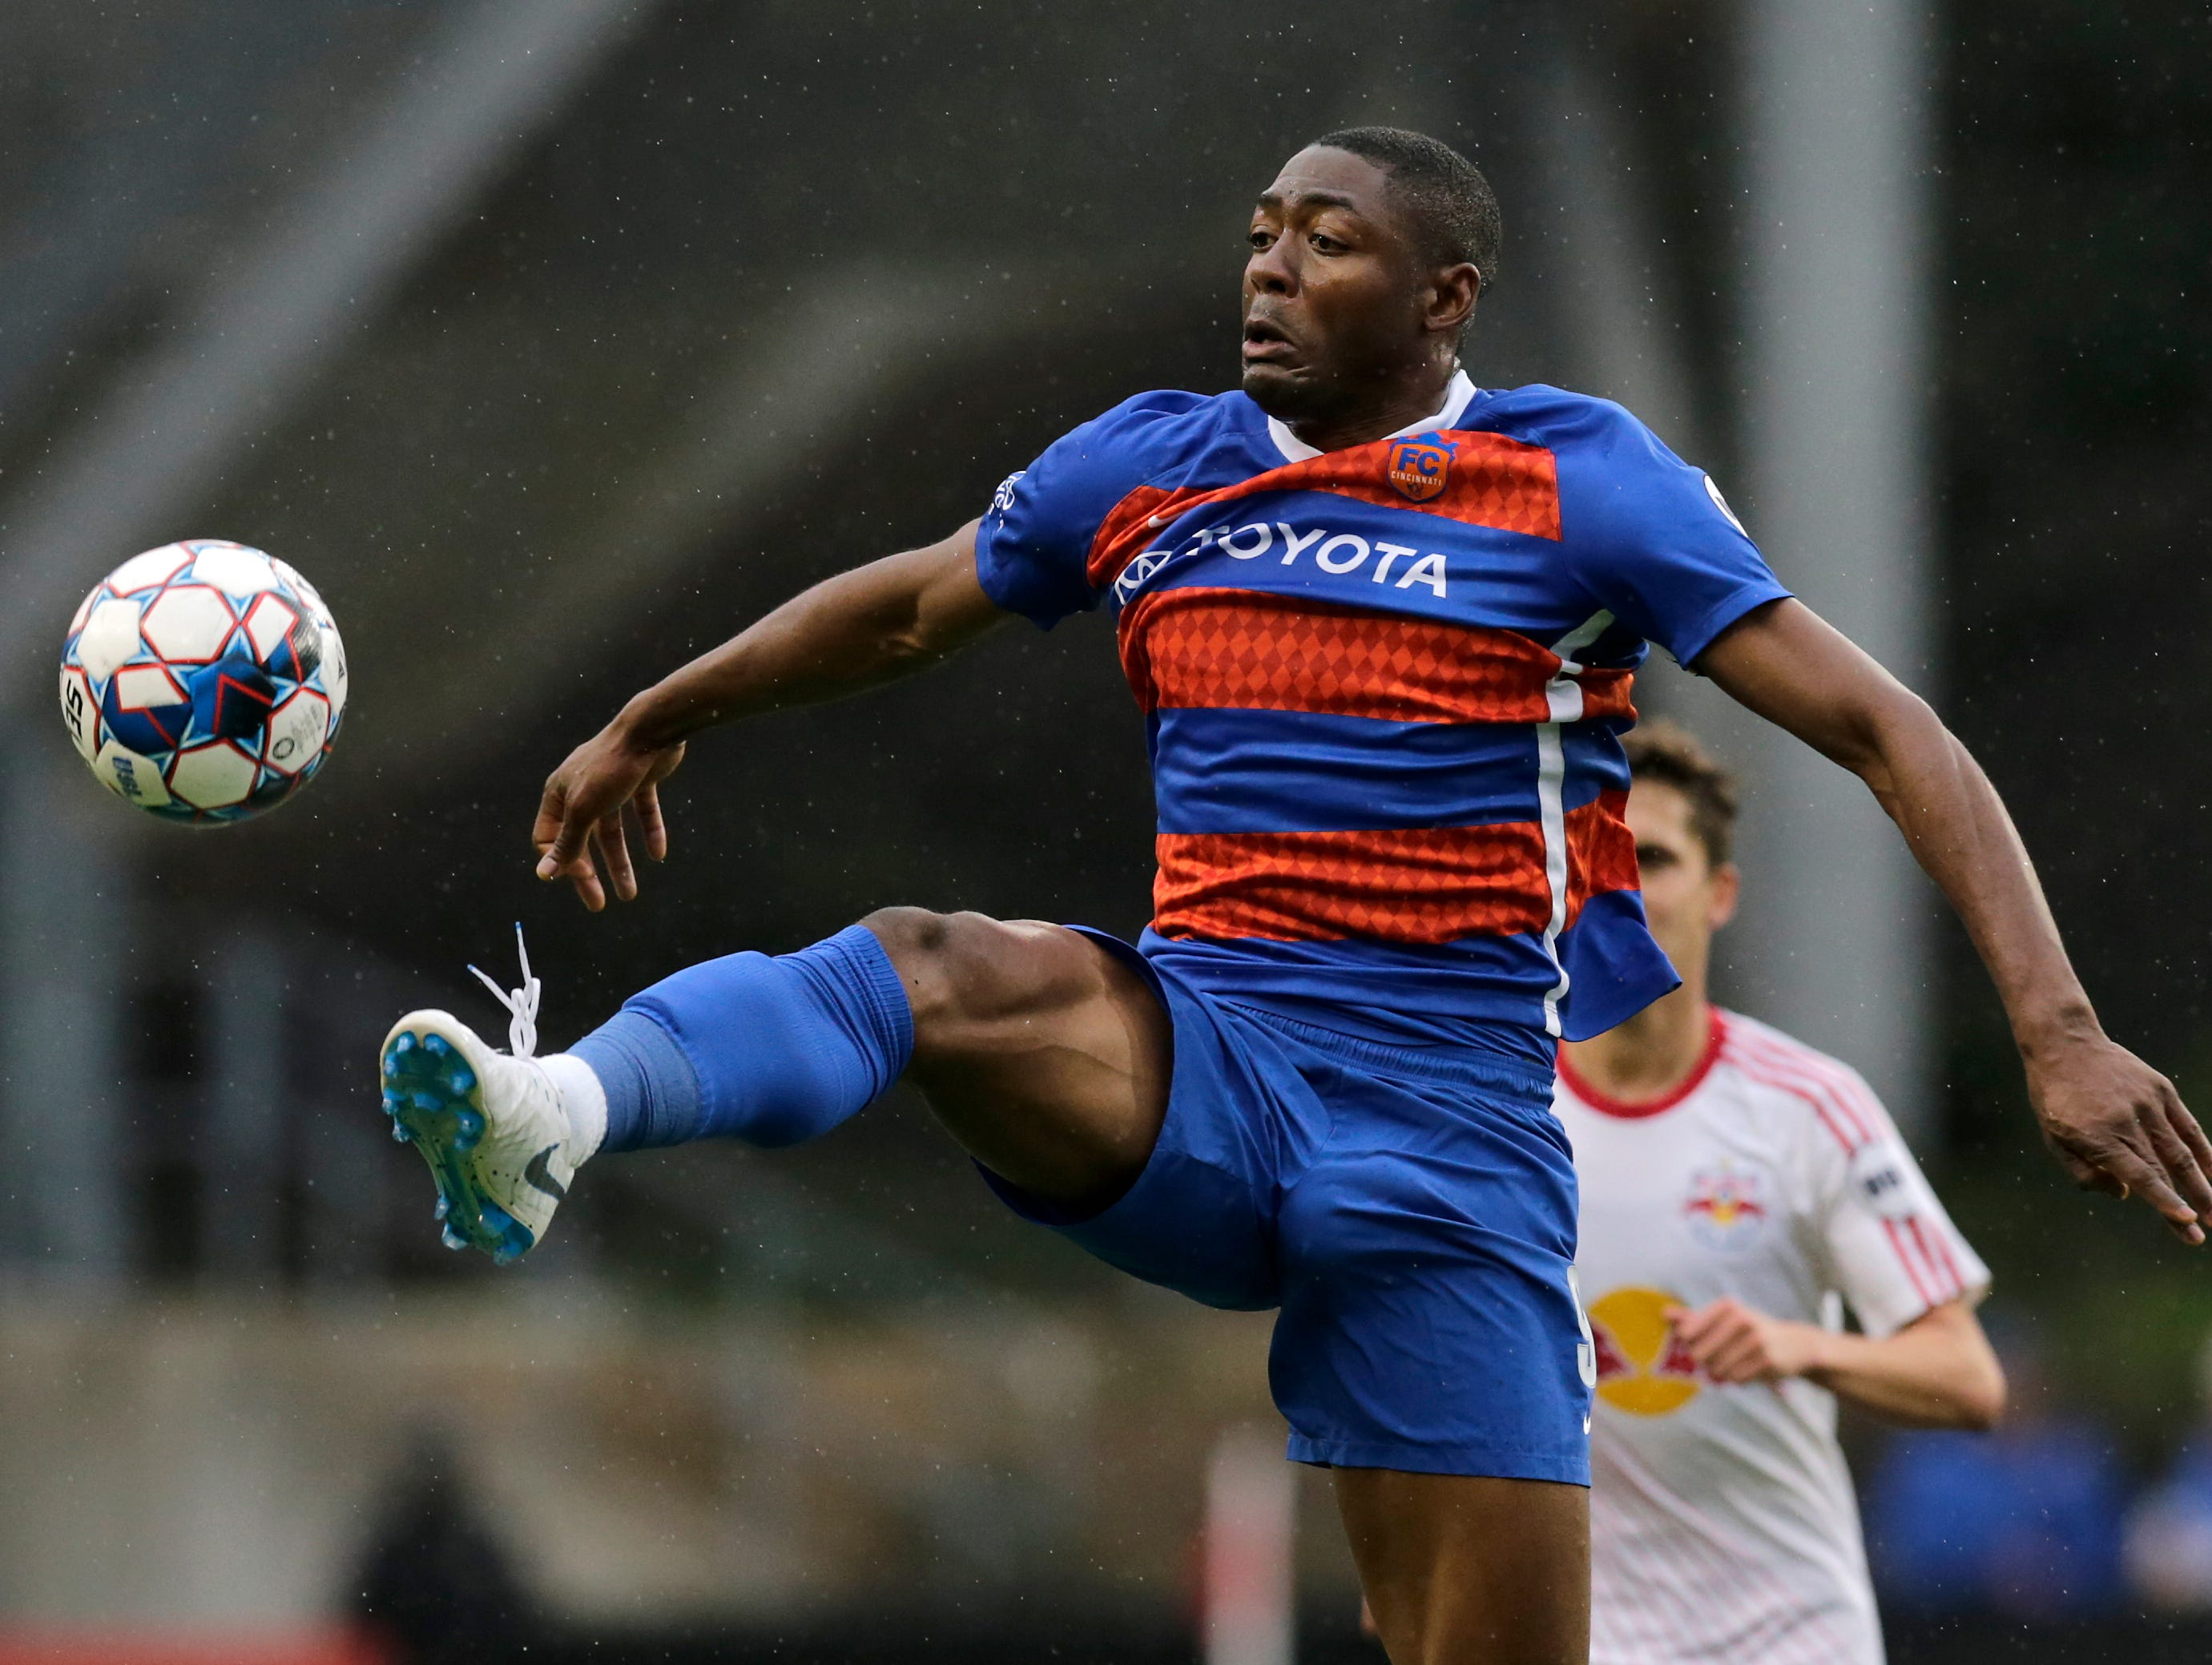 FC Cincinnati forward Fanendo Adi (9) stretches for a kick in the first half of the USL Eastern Conference Semifinal match between the FC Cincinnati and the New York Red Bulls II at Nippert Stadium in Cincinnati on Tuesday, Oct. 16, 2018. New York Red Bulls II led 1-0 at half time.